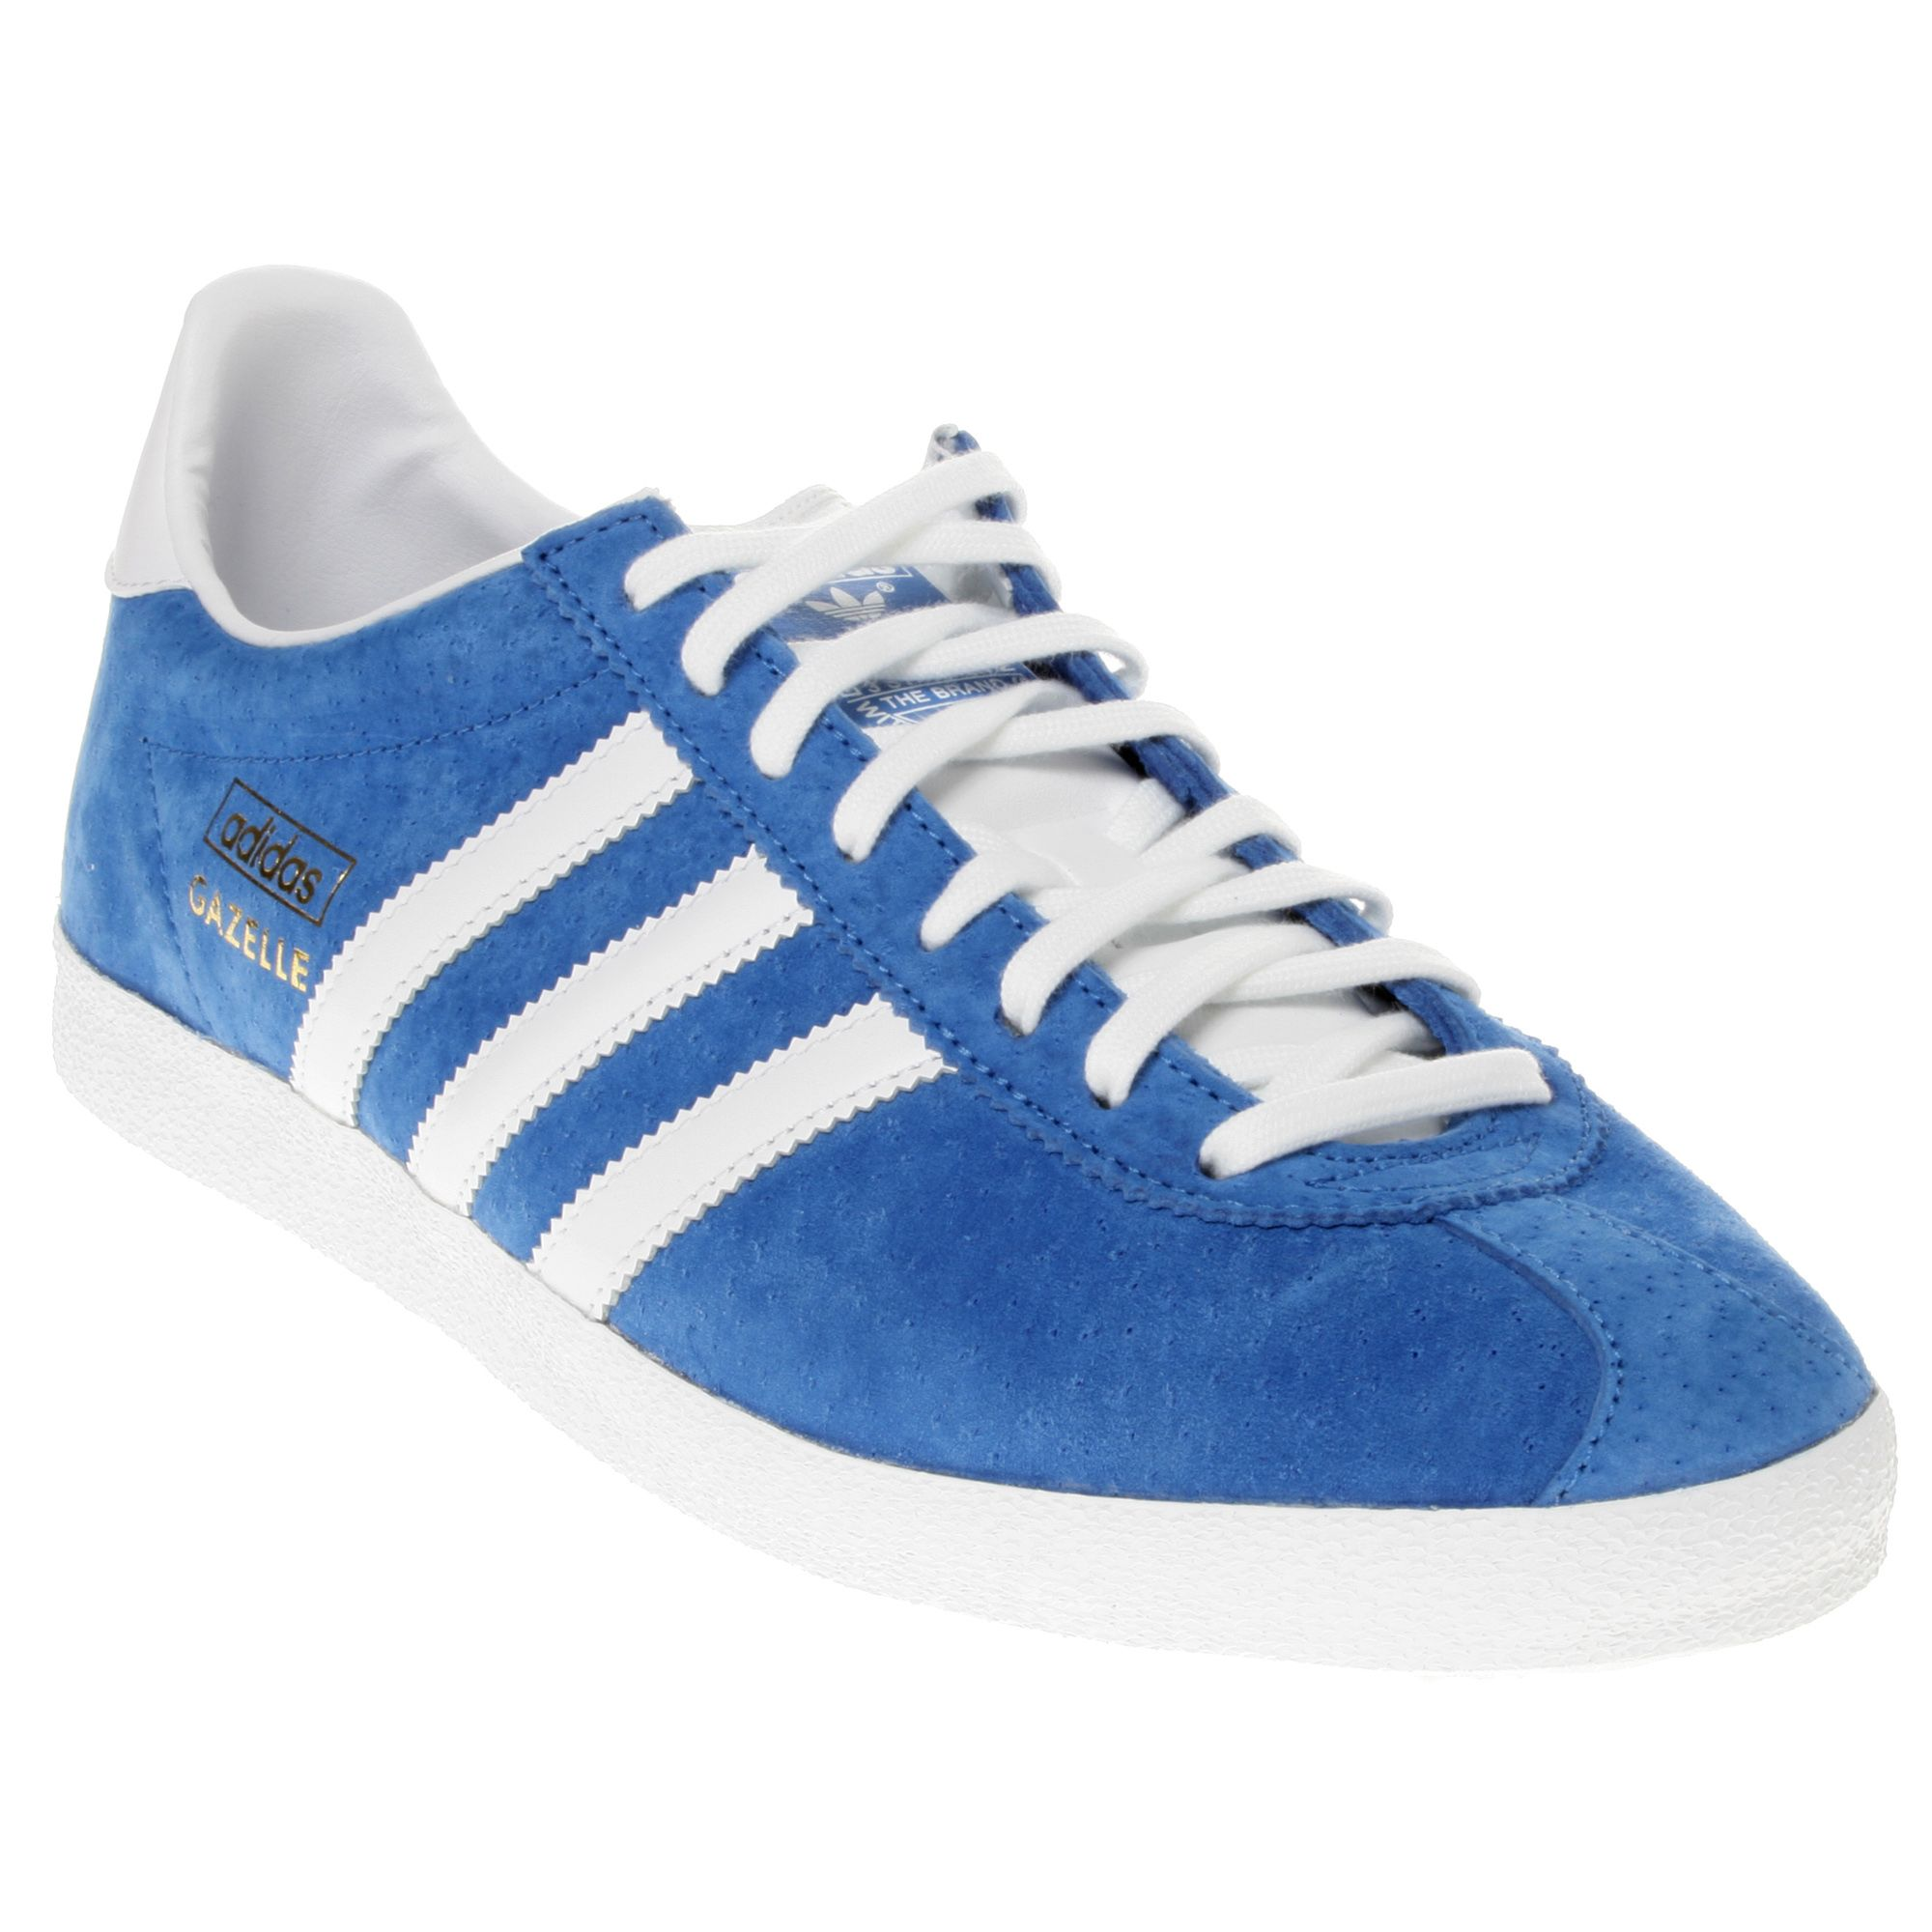 Adidas-Original-Gazelle-OG-Blue-White-New-Mens-Suede-Trainers-Shoes-Boots